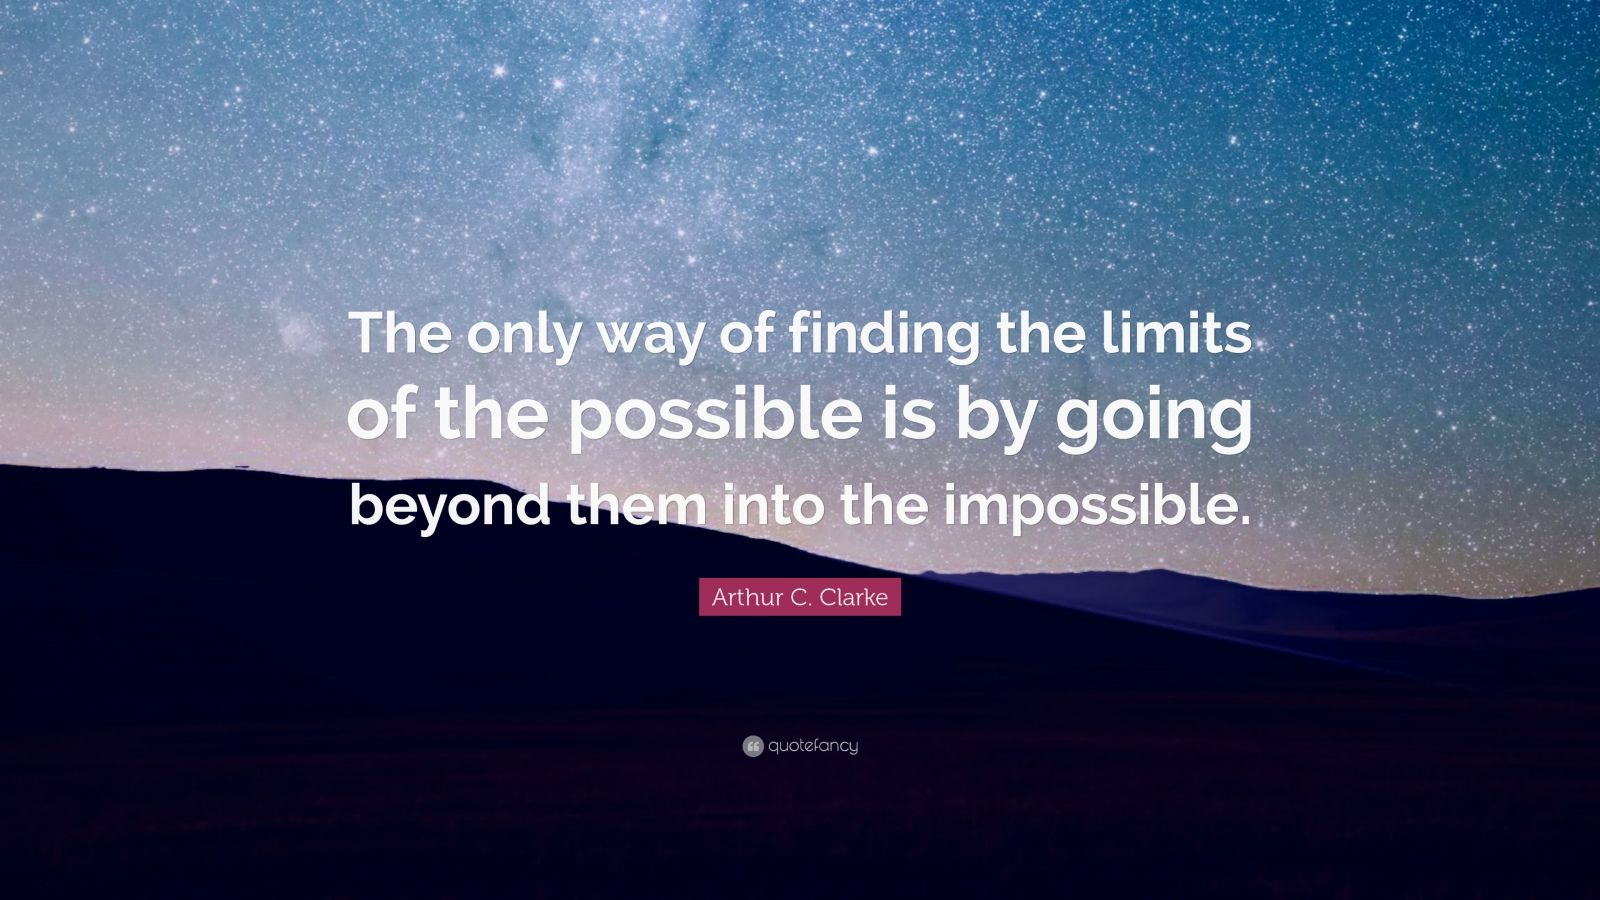 Studying Quotes Wallpaper Arthur C Clarke Quote The Only Way Of Finding The